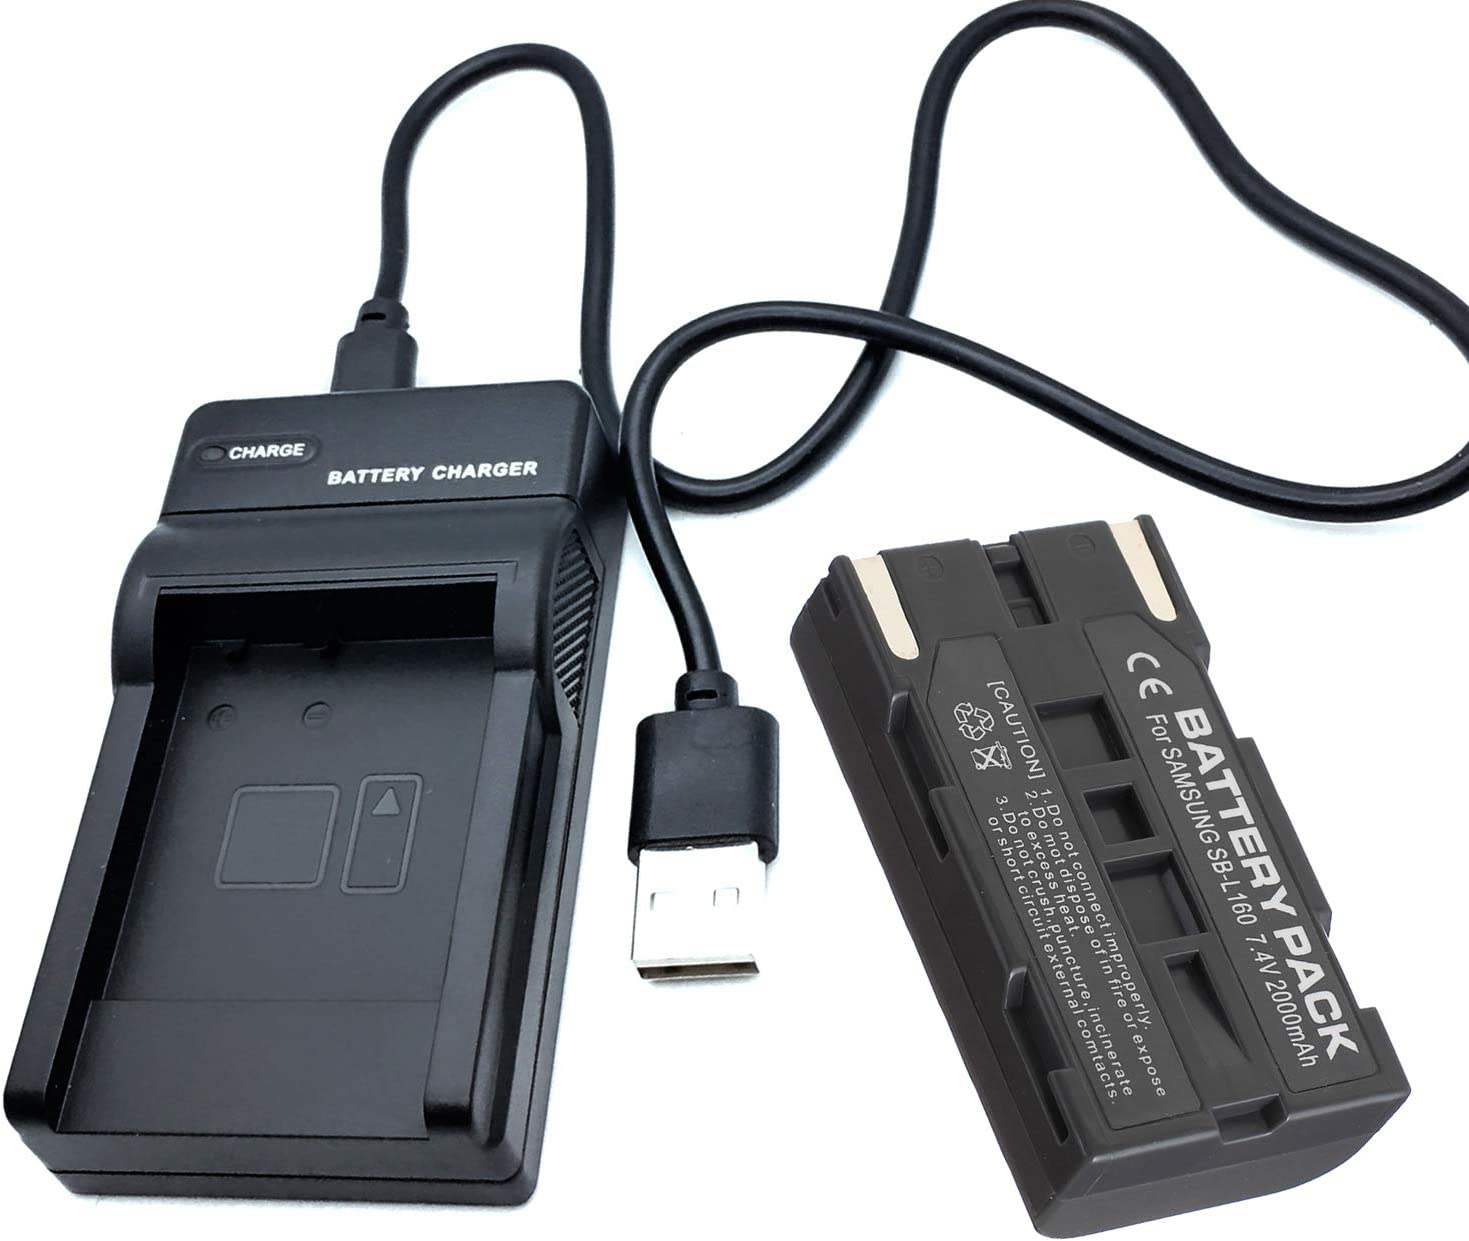 VP-L906 VP-L907 Digital Video Camcorder Battery Pack and LCD USB Travel Charger for Samsung VP-L900